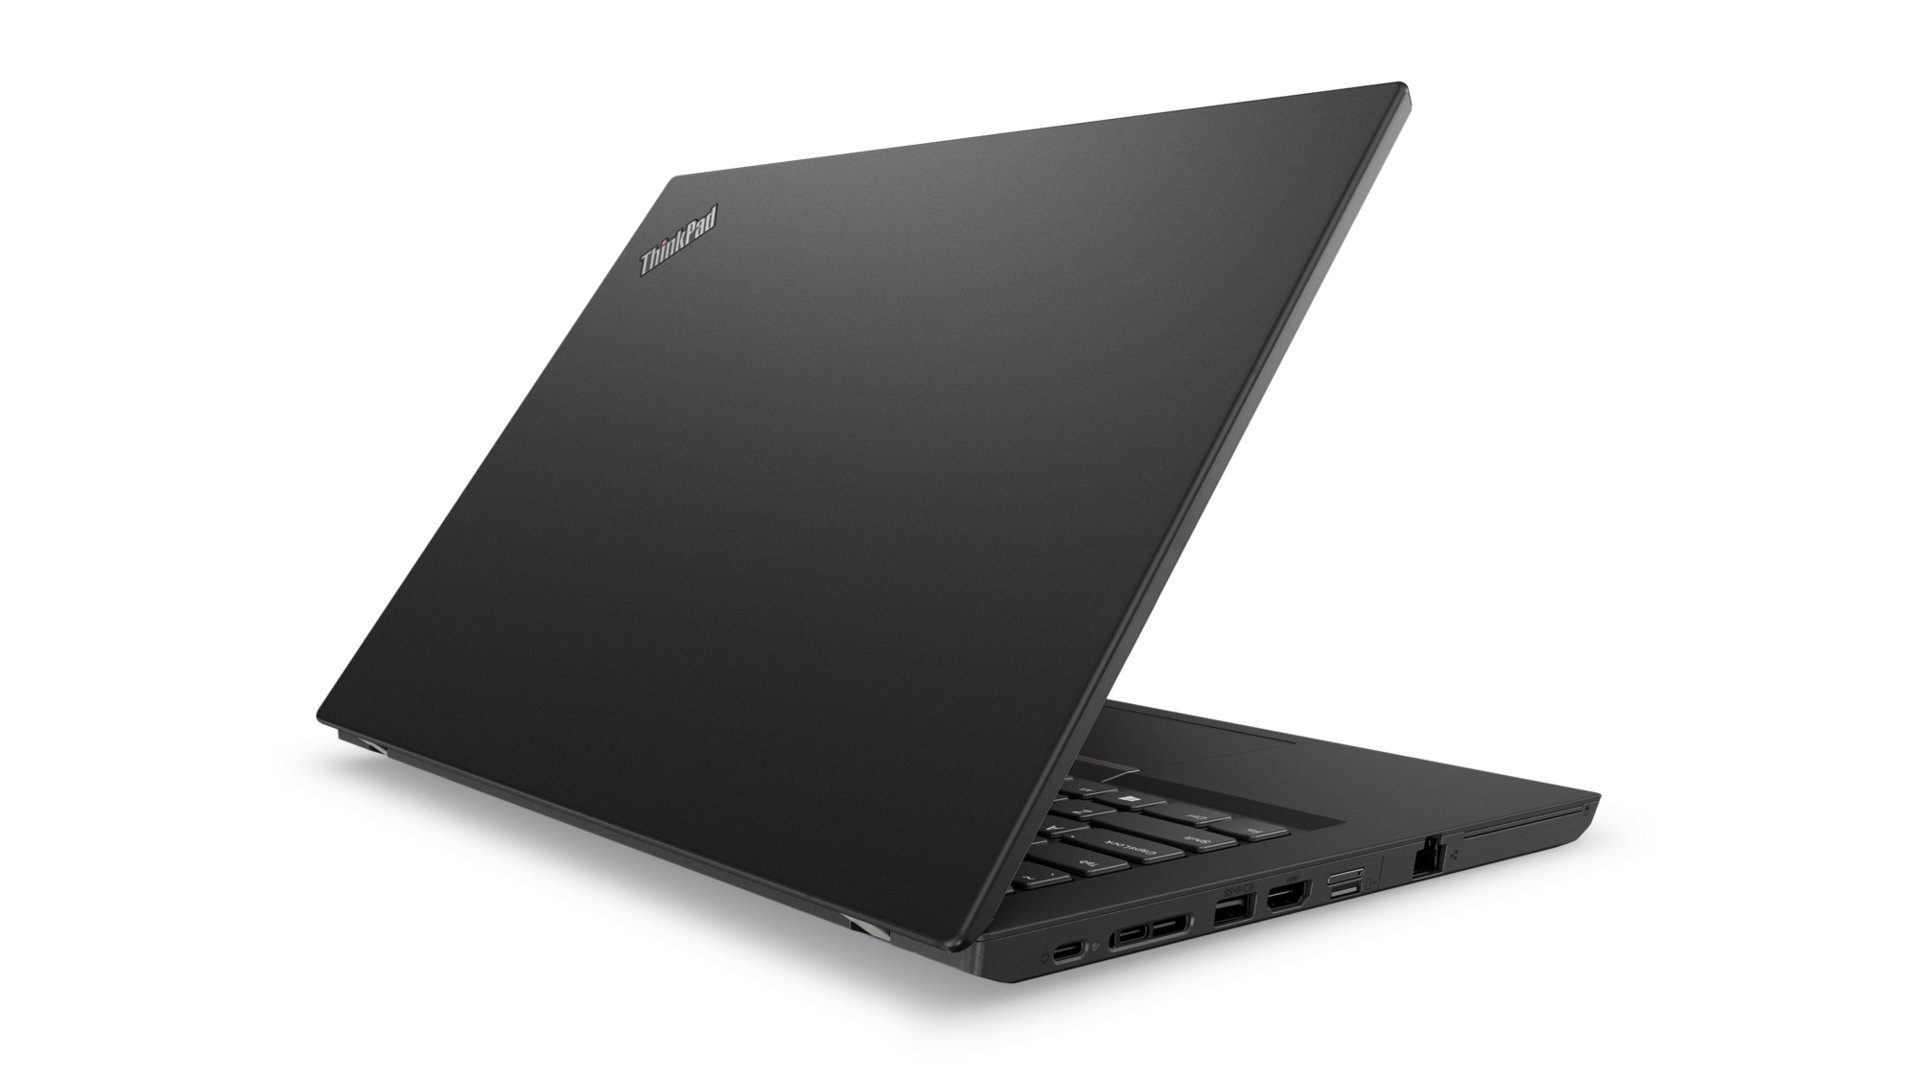 Lenovo ThinkPad L480